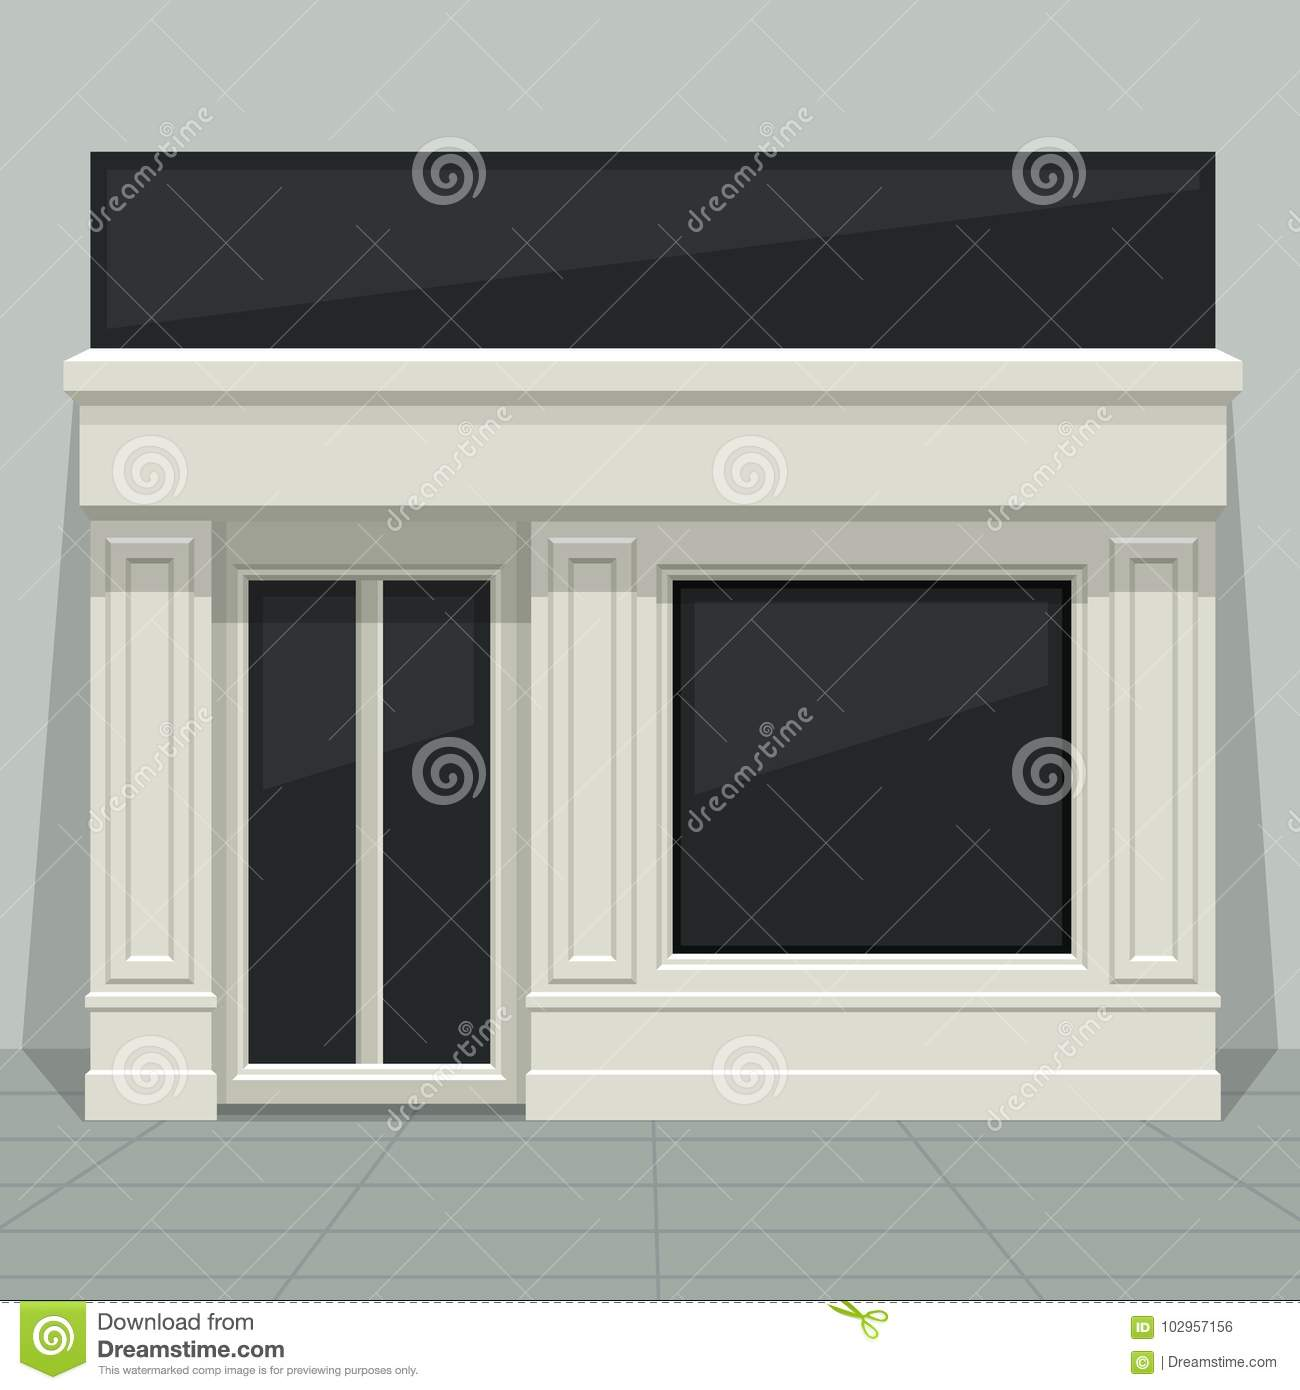 facade shop store boutique with glass windows and doors front stock vector illustration of. Black Bedroom Furniture Sets. Home Design Ideas